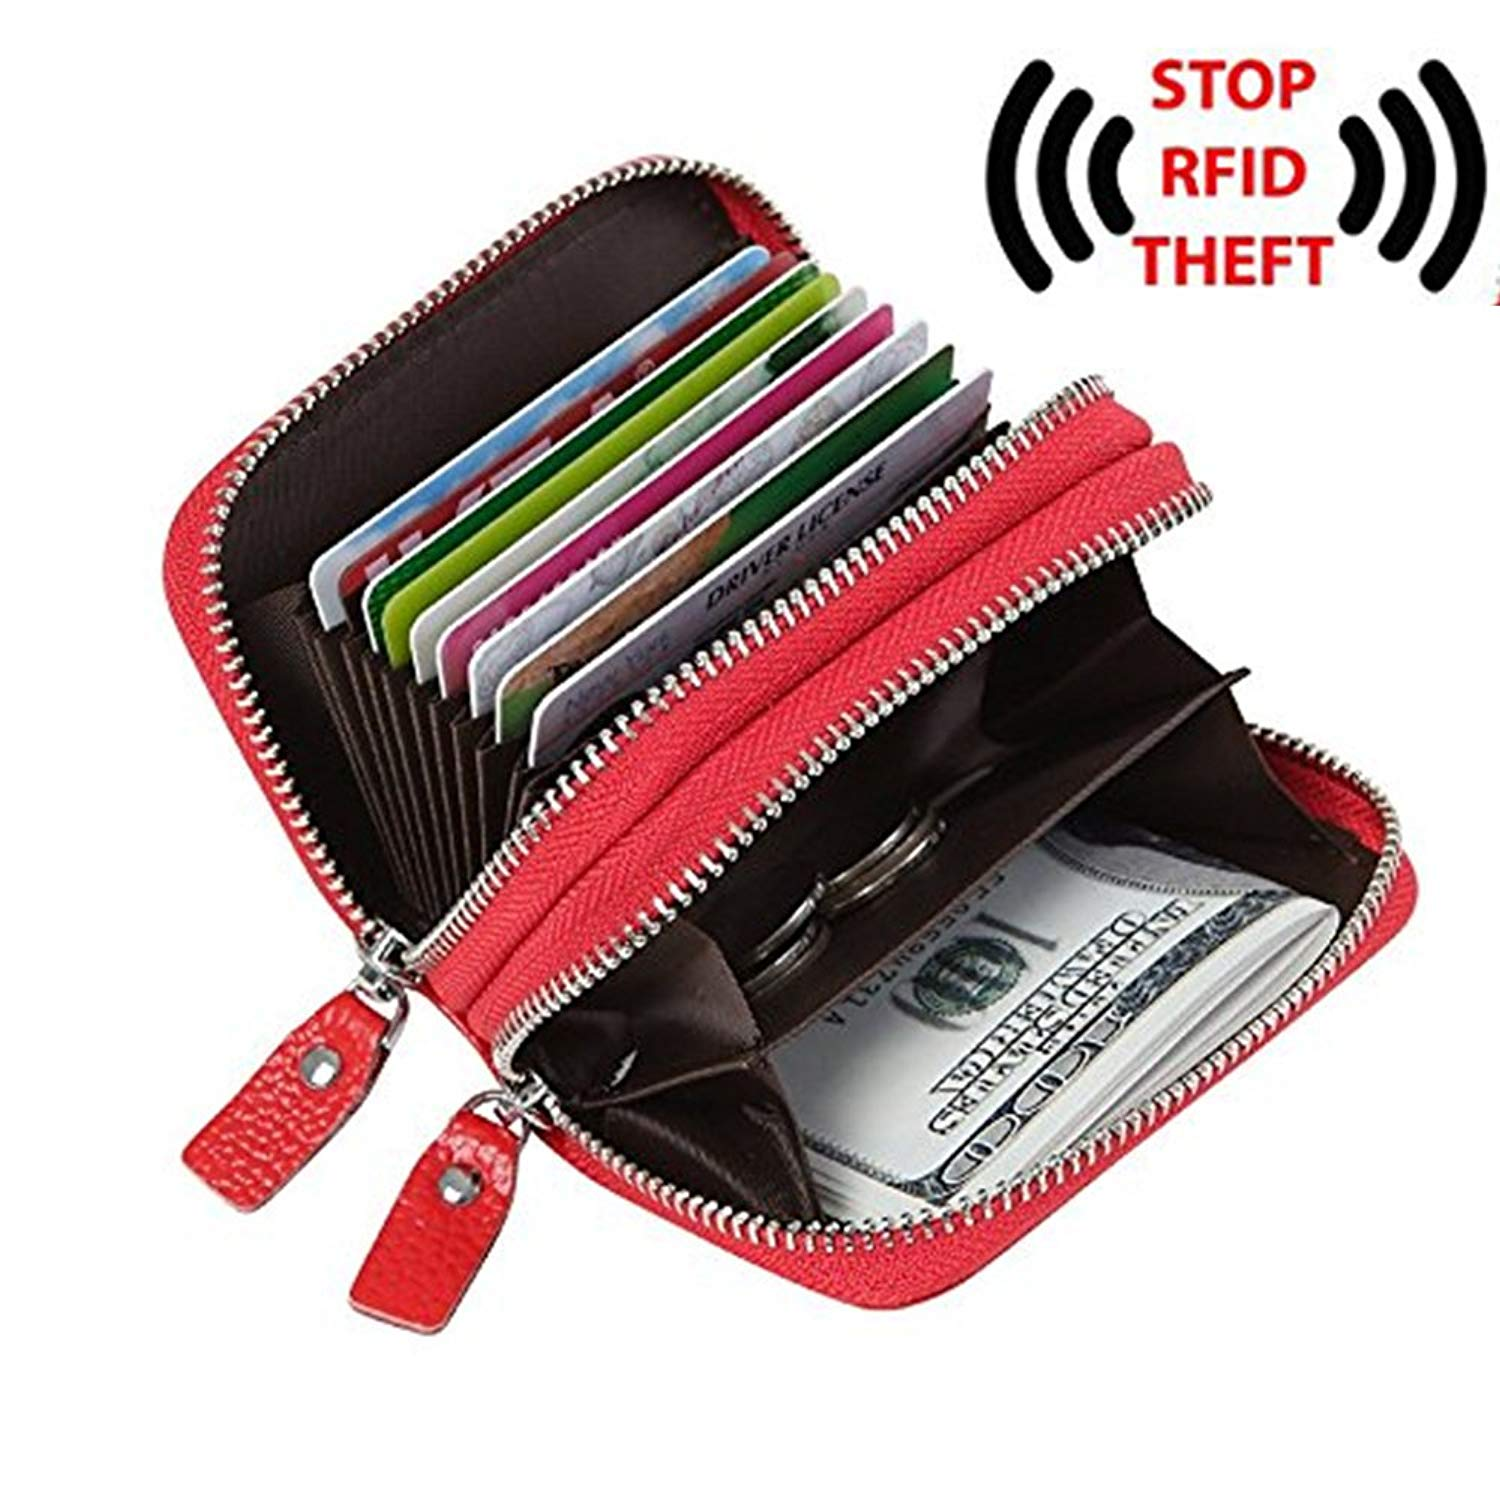 930be4379e05 Cheap Credit Card Wallet For Women, find Credit Card Wallet For ...